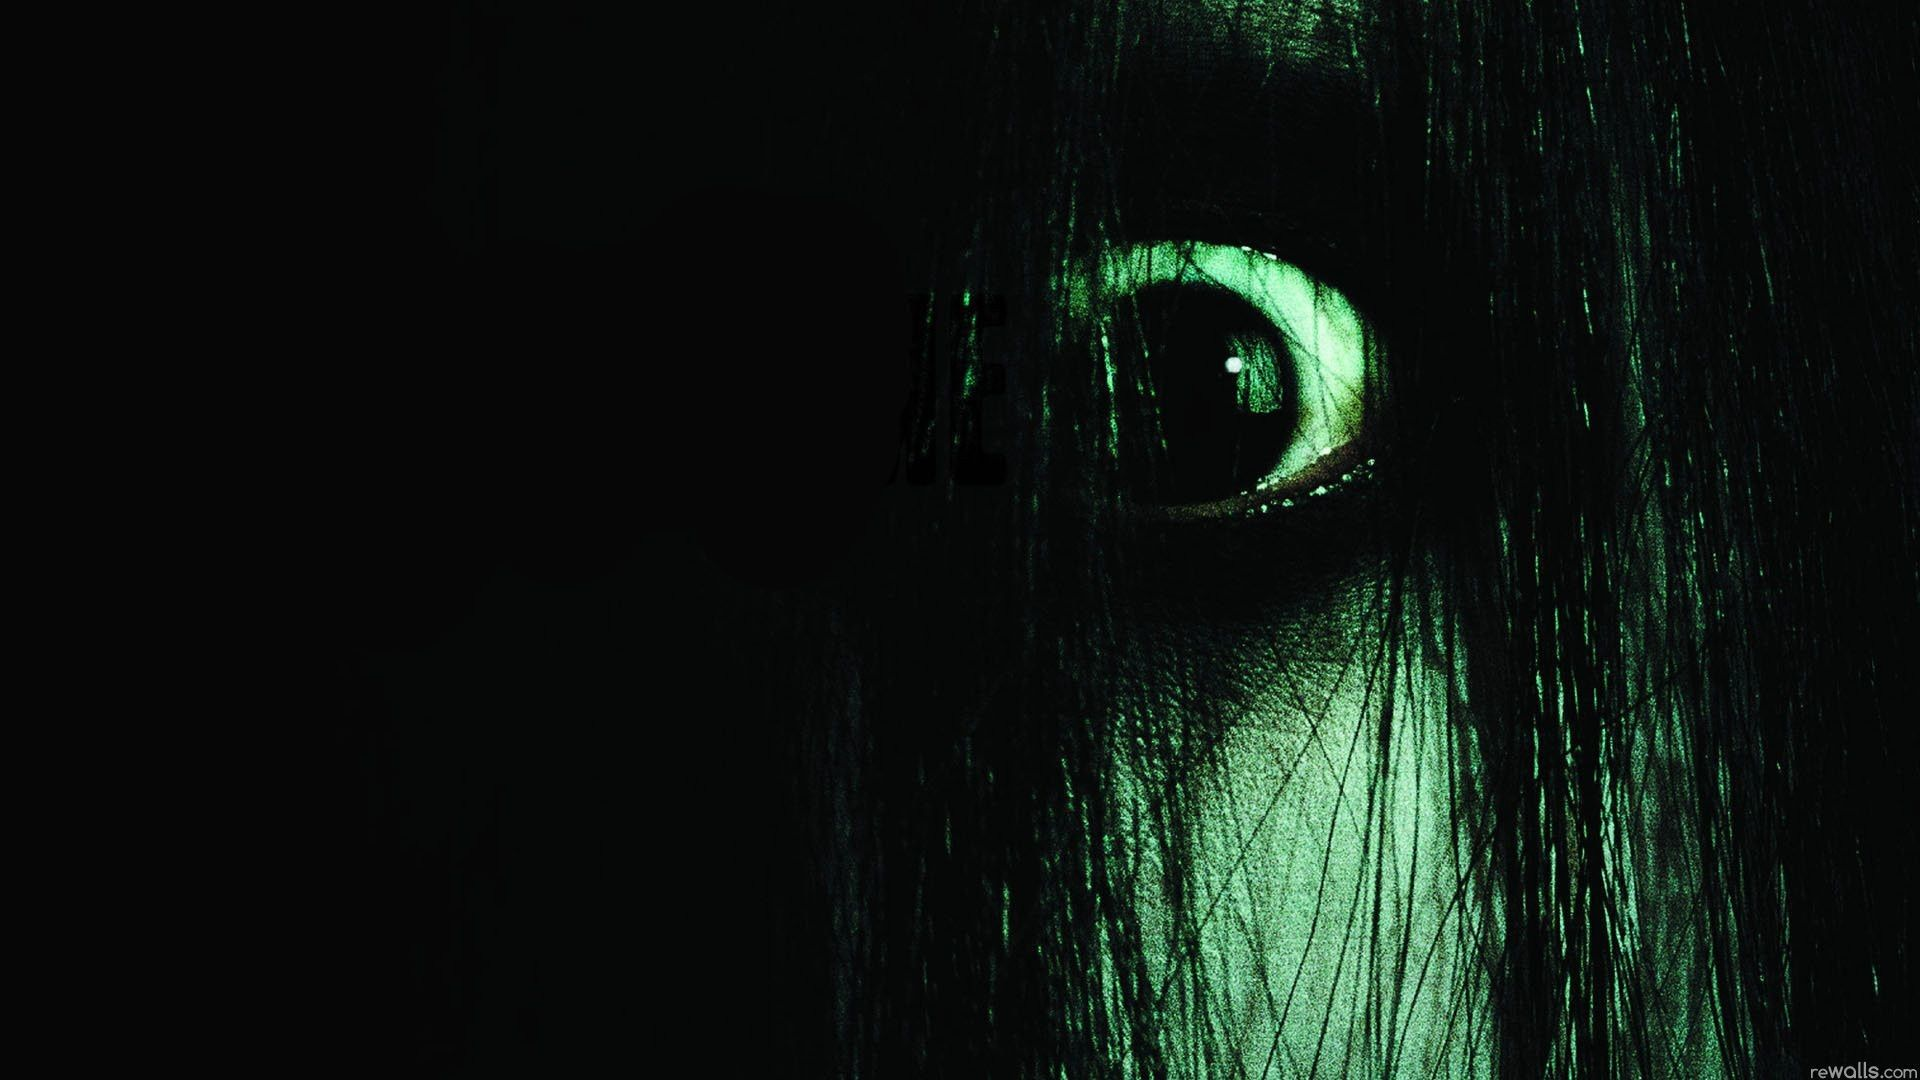 68 Scary Wallpapers On Wallpaperplay Scary Wallpaper Scary Images Scary Backgrounds